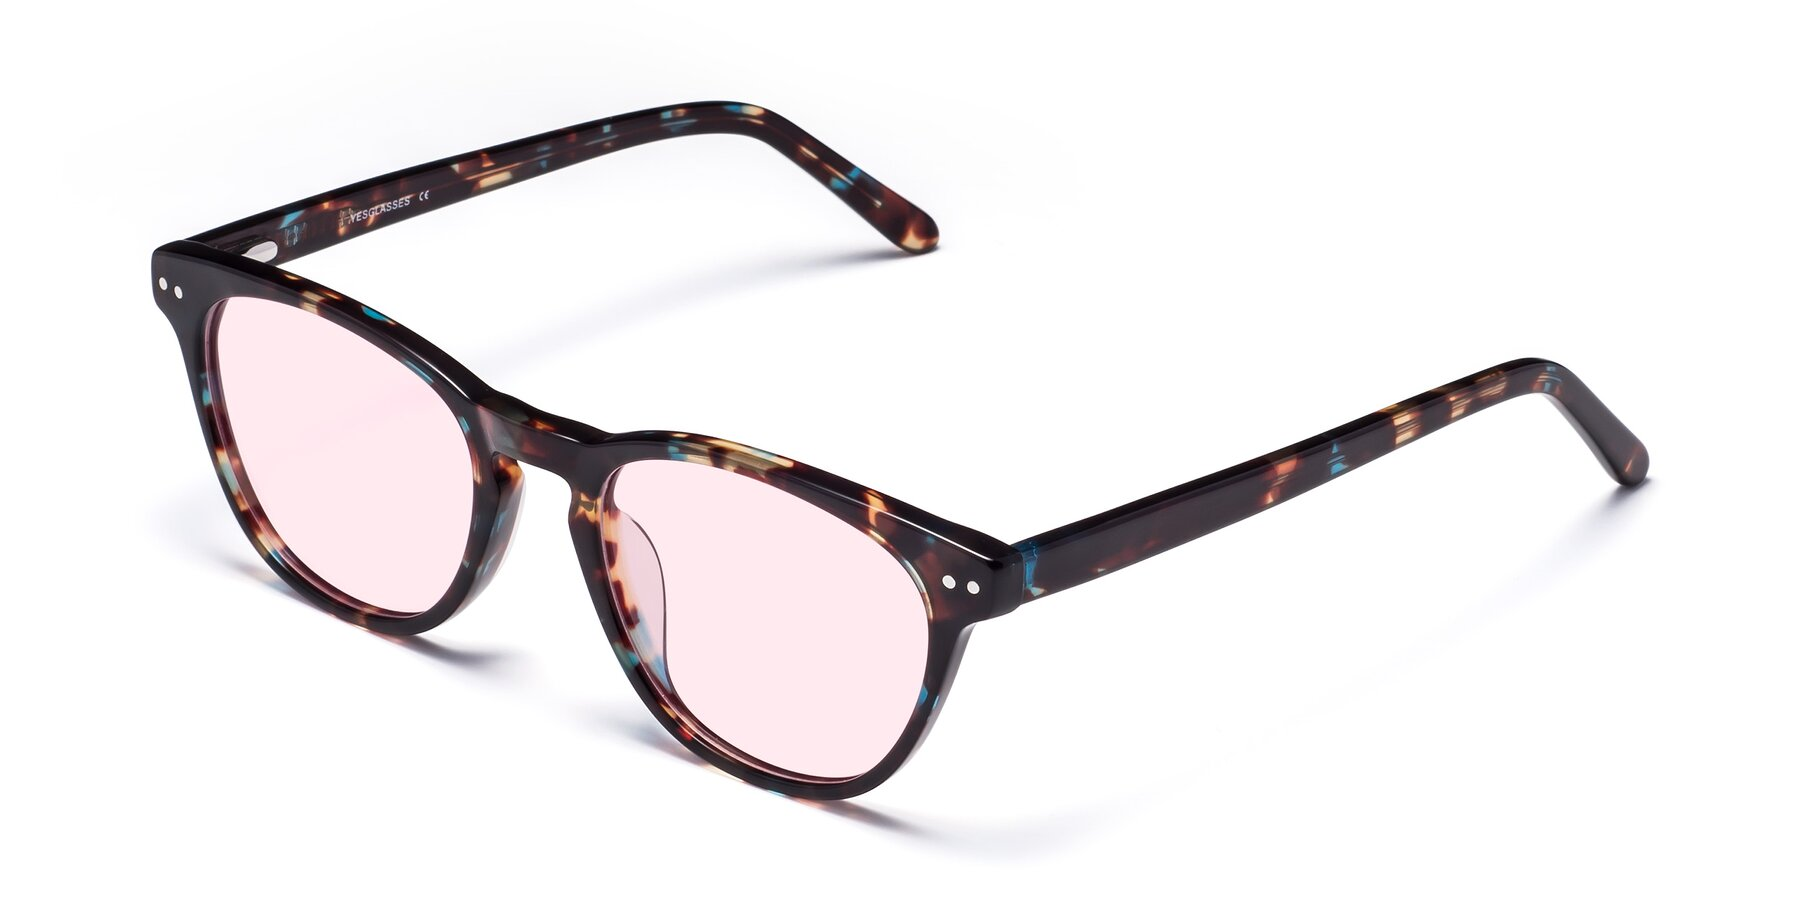 Angle of Blaze in Tortoise-Blue with Light Pink Tinted Lenses